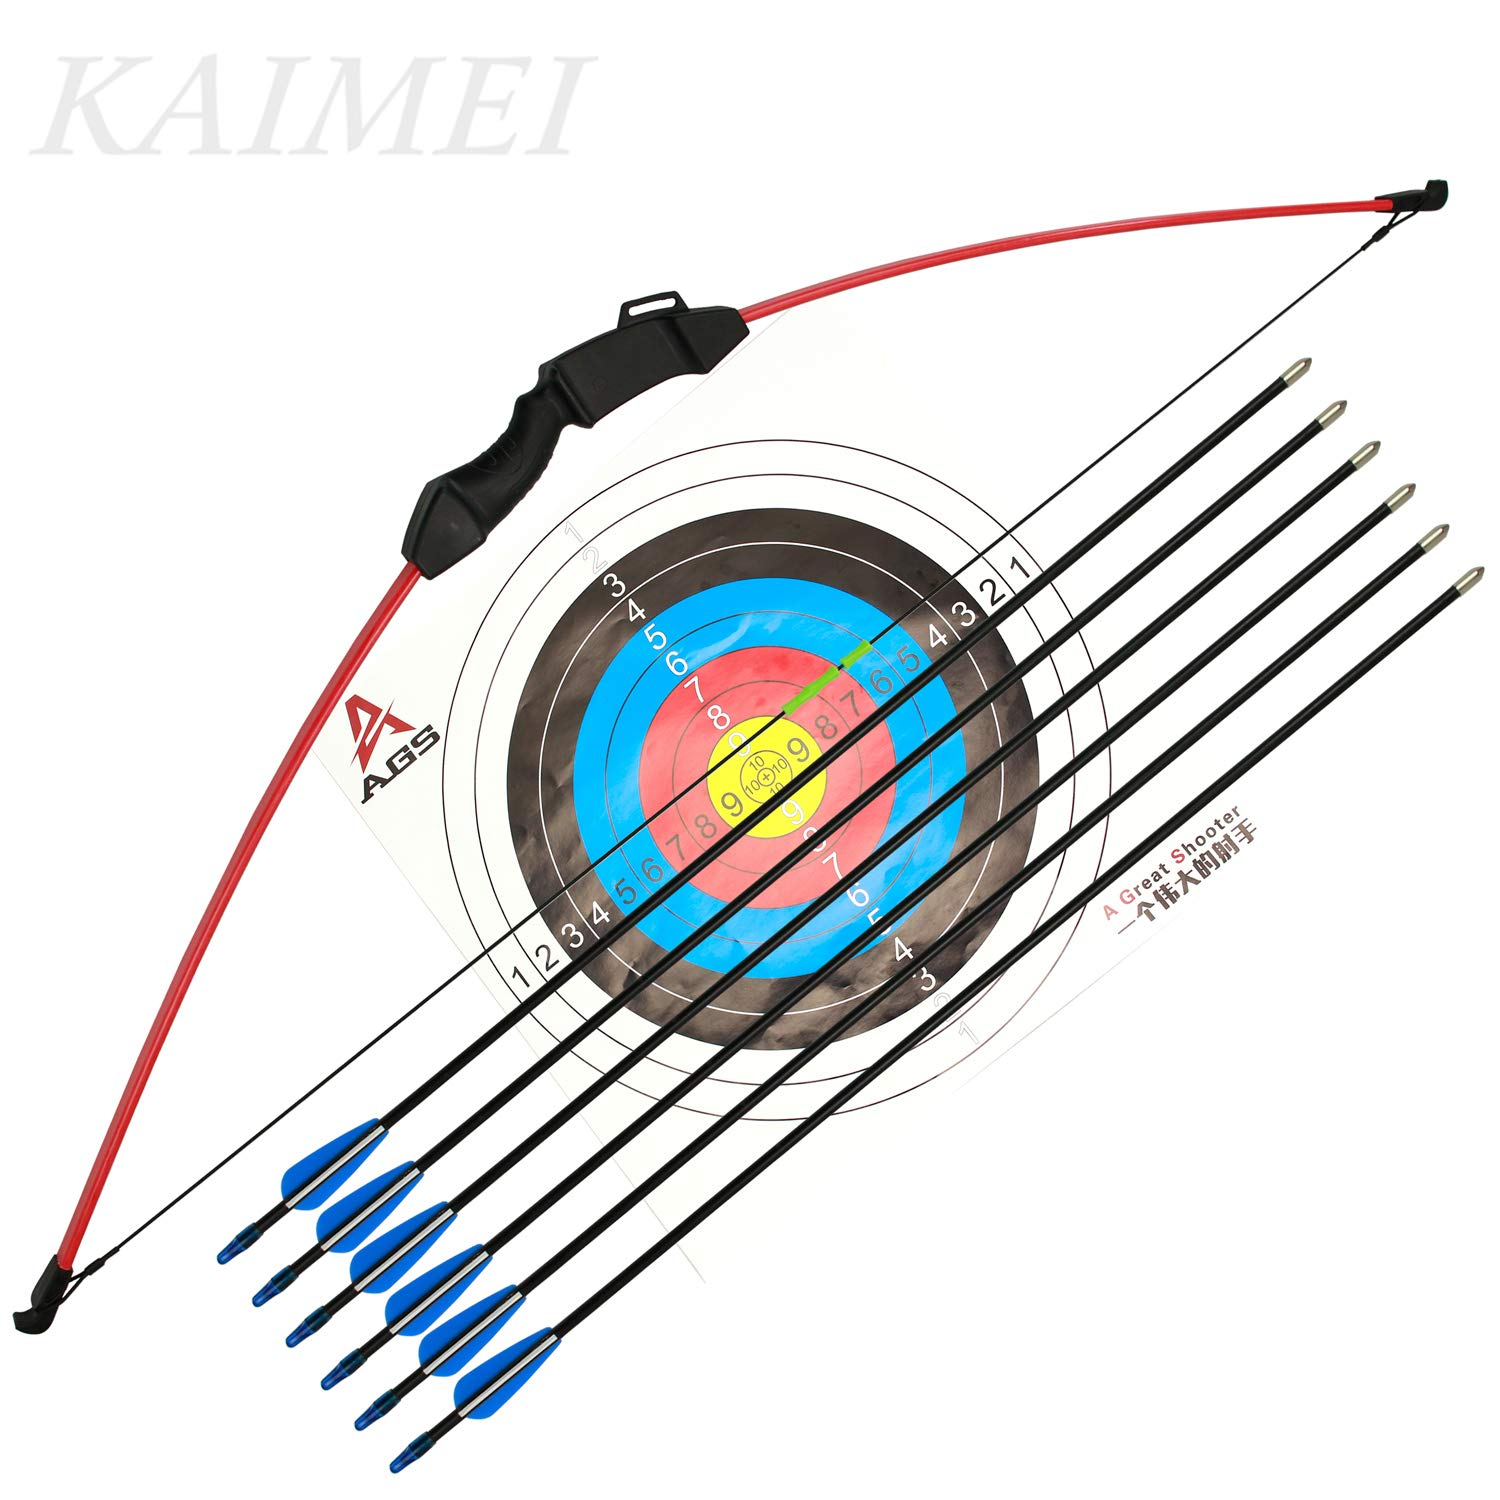 kaimei 43 Inch Recurve Bow Archery Red Limbs for Youth Beginner Practice and Outdoor Shooting Right and Left Hand with 6 Fiberglass Arrows and 2 Target Paper